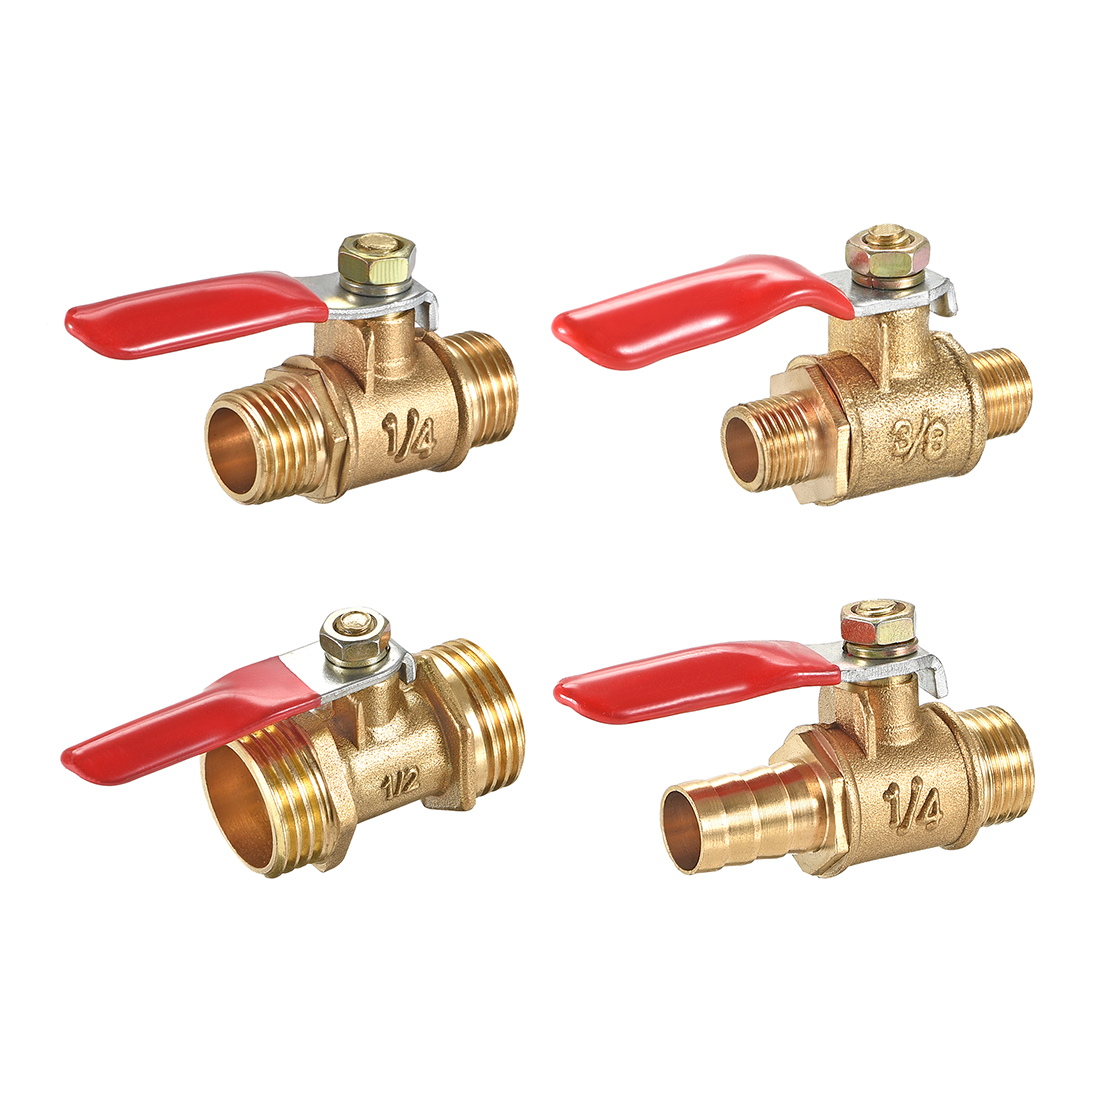 uxcell Brass Air Ball Valve Shut-Off Switch 1//4 Hose Barb to 1//4 Hose Barb Pipe Tubing Fitting Coupler 180 Degree Operation Handle 2Pcs